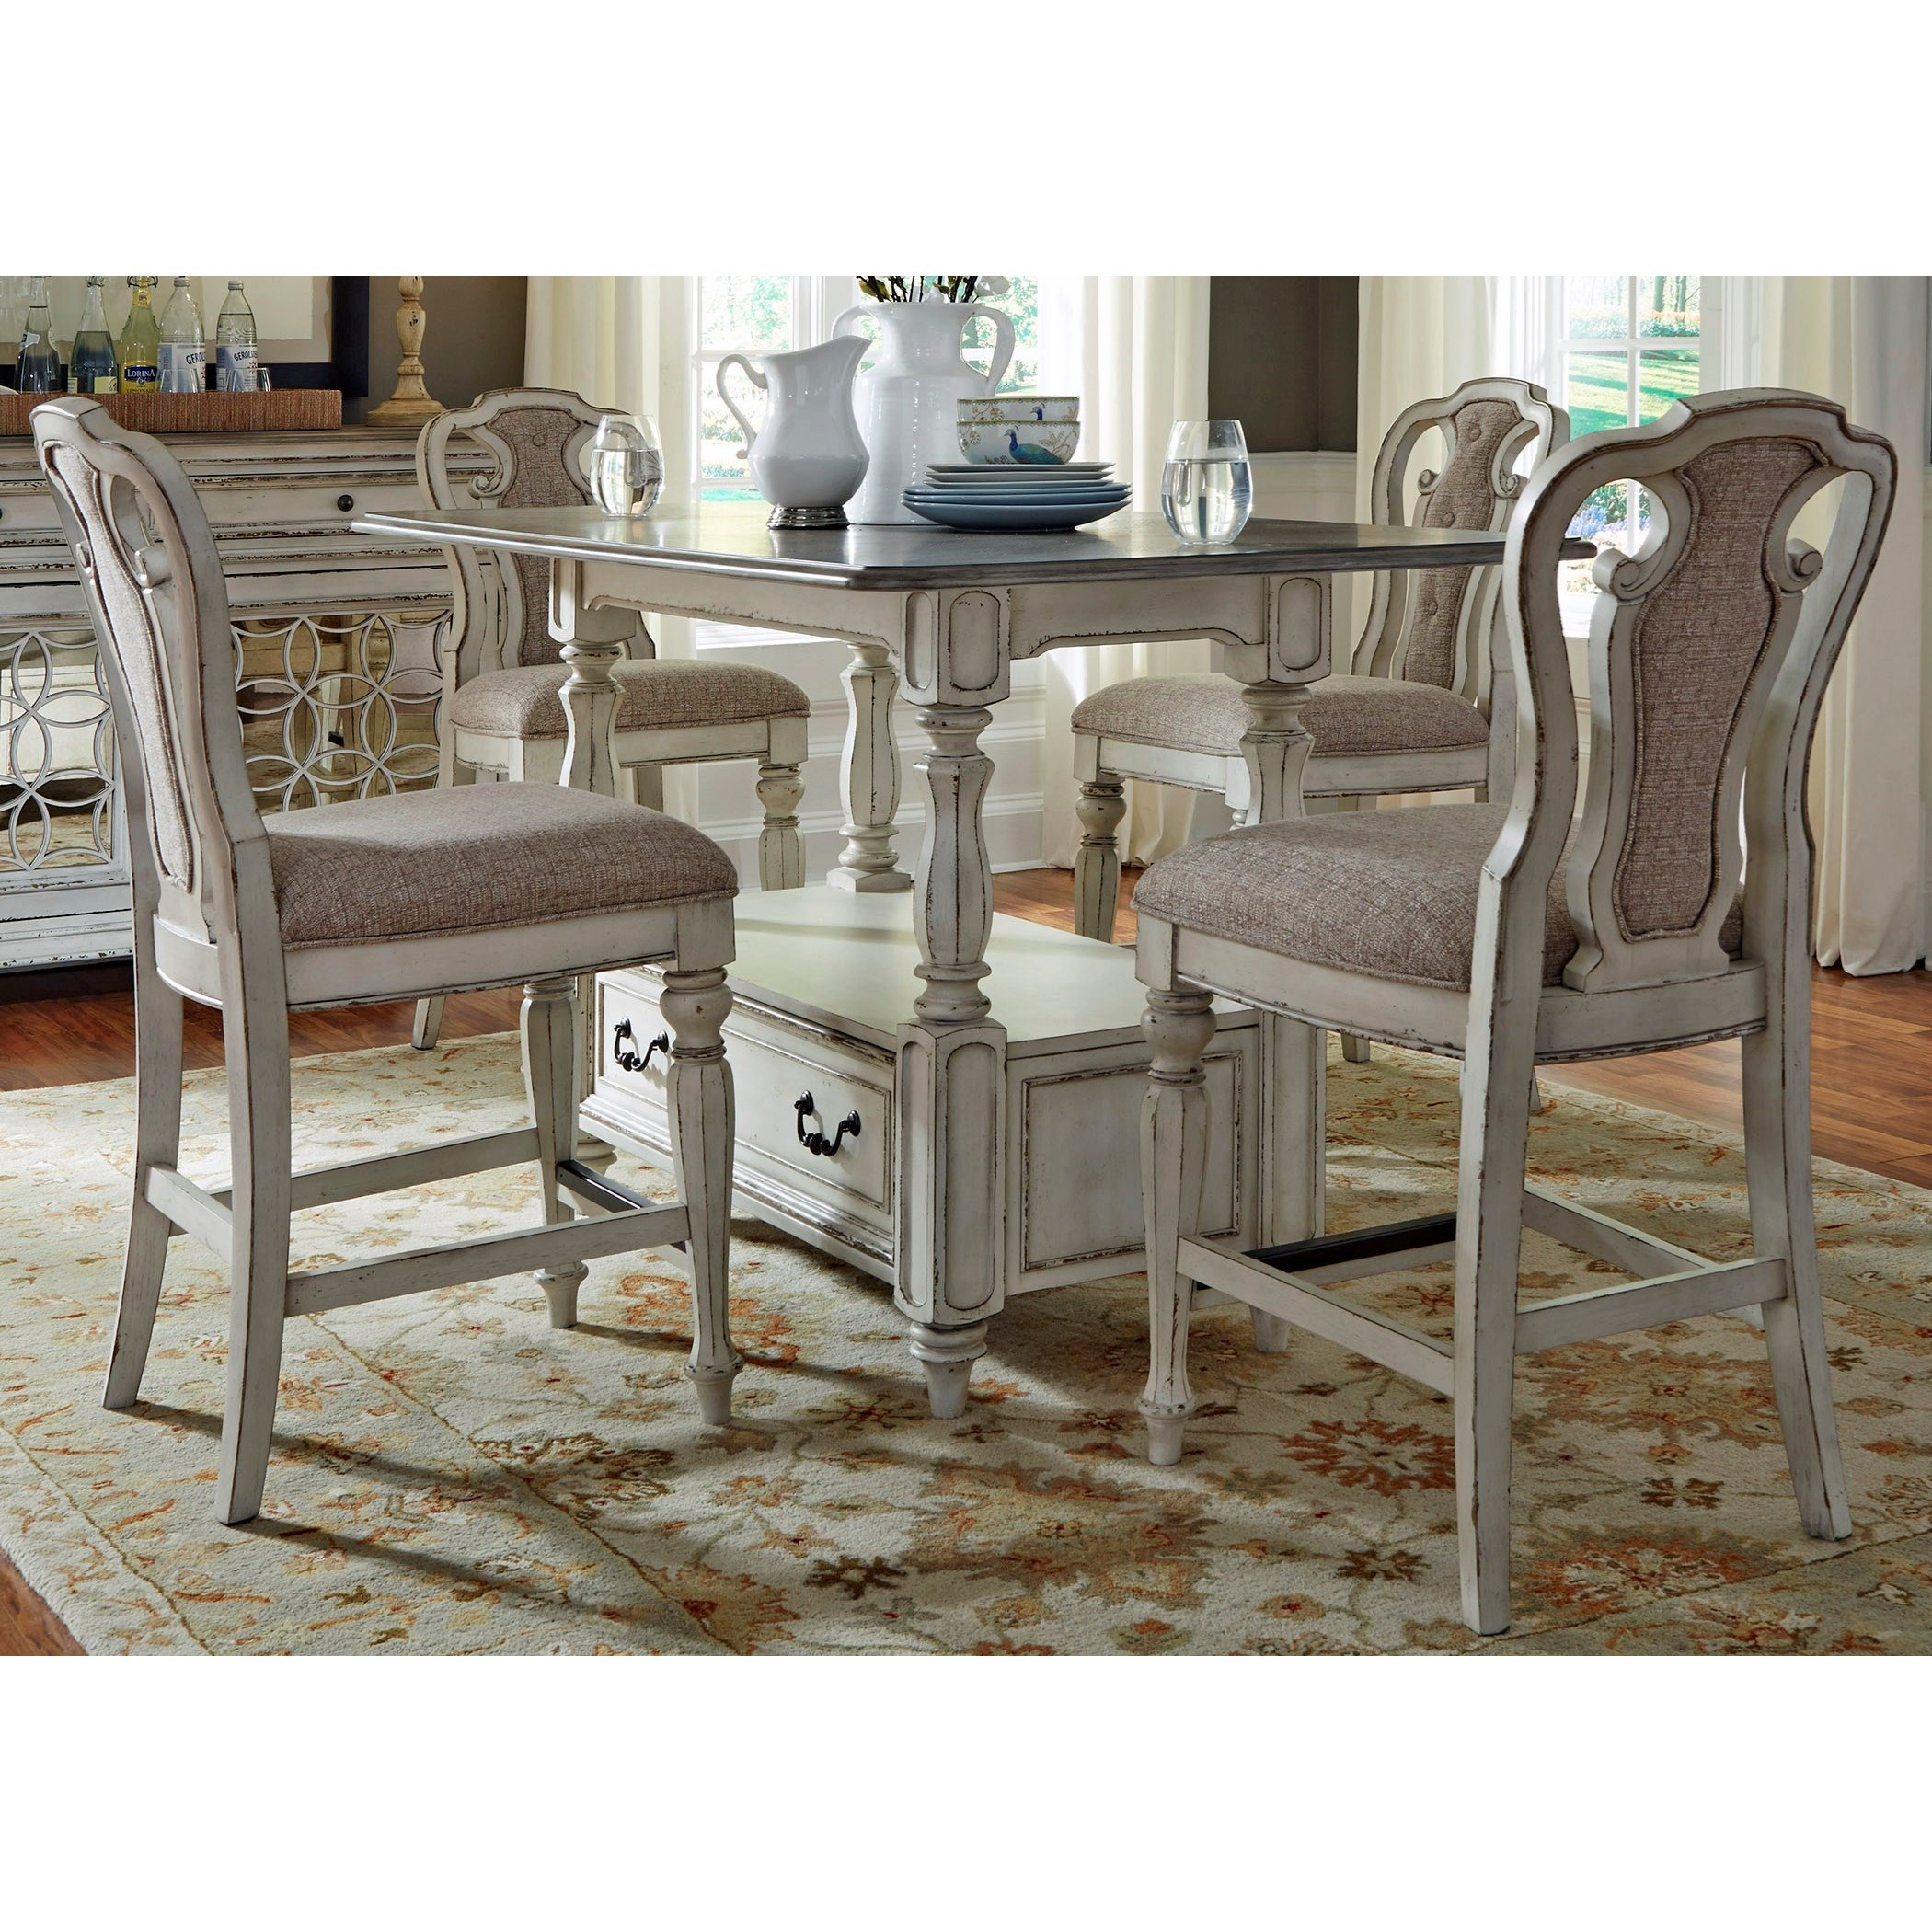 Magnolia Manor Dining Gathering Table and Chair Set by Liberty Furniture at Northeast Factory Direct